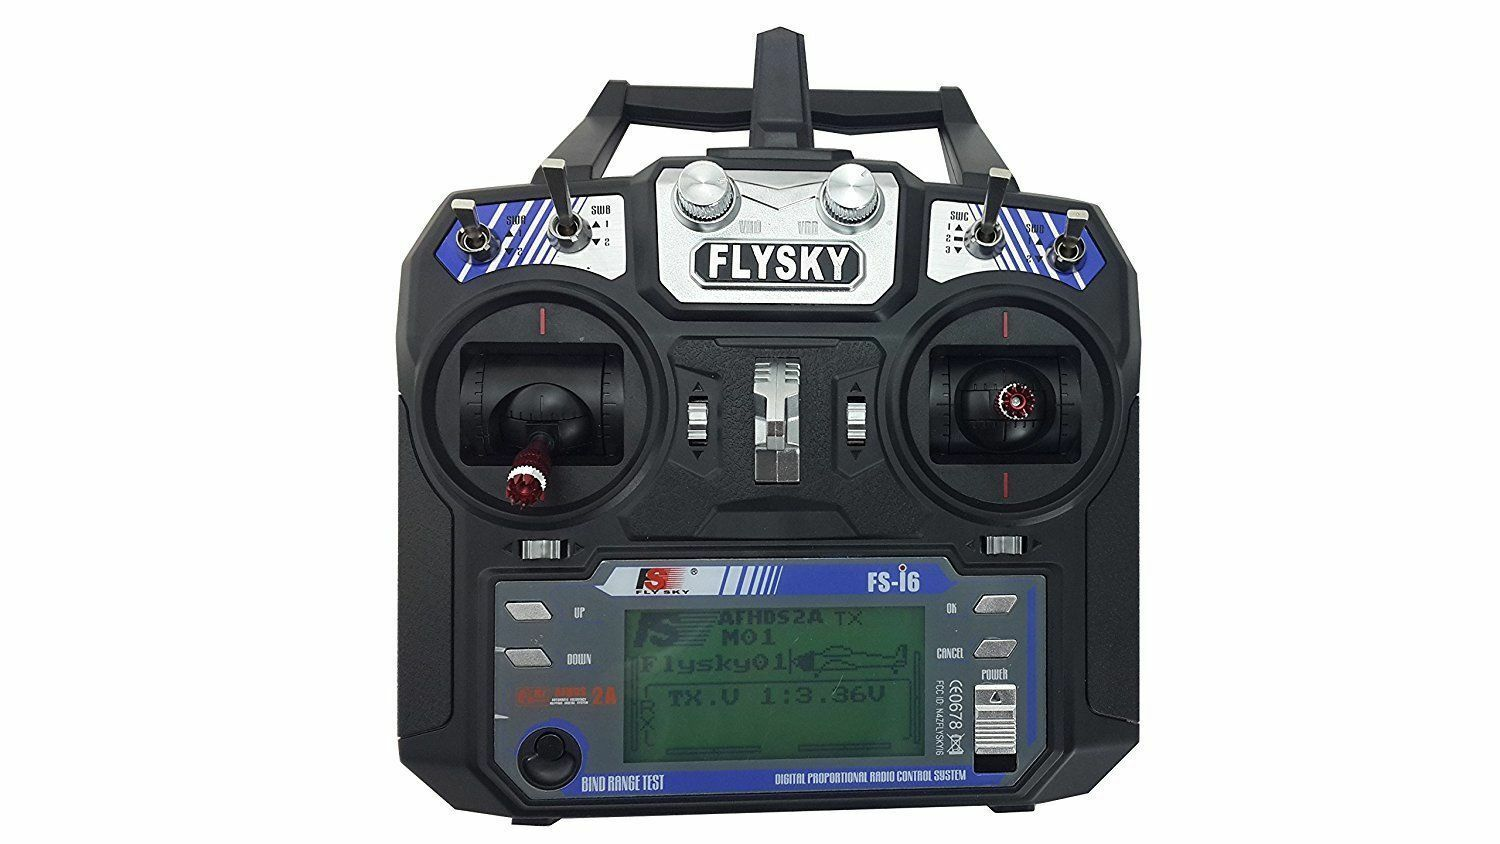 2.4 GHz Transmitter Receiver Flysky FS-i6 Radio Controller for RC Drone Car Boat